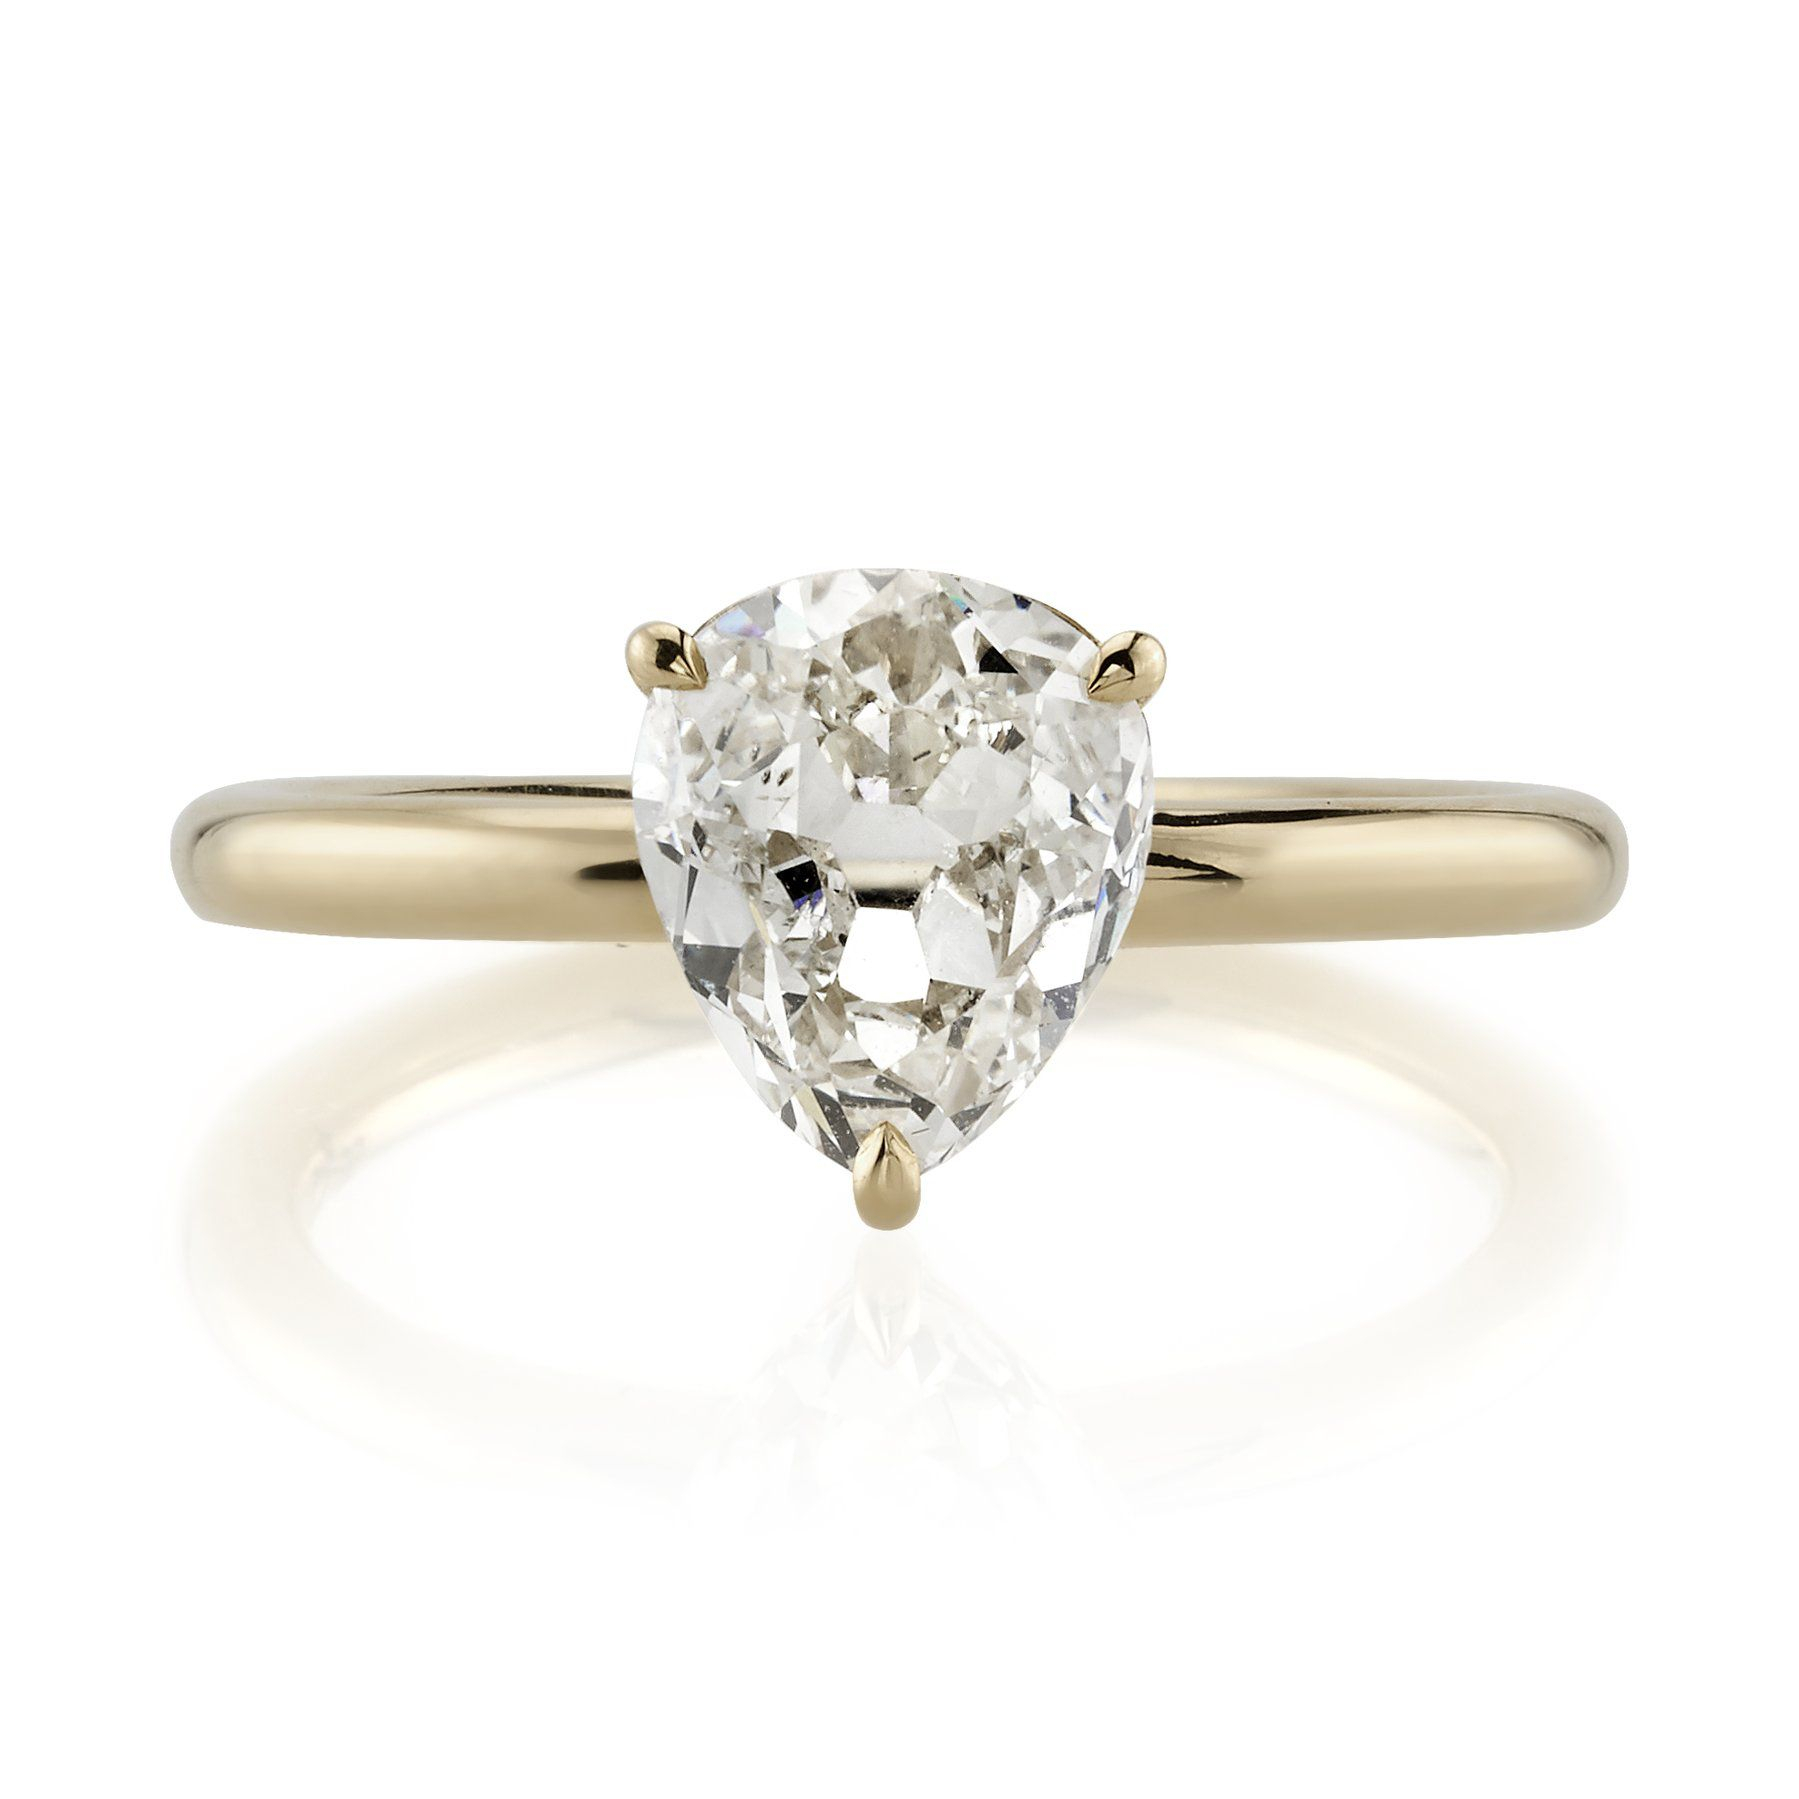 34 Pear Shaped Engagement Rings For Every Bride Regarding Tryst Pear Shaped Diamond Engagement Rings (View 6 of 25)